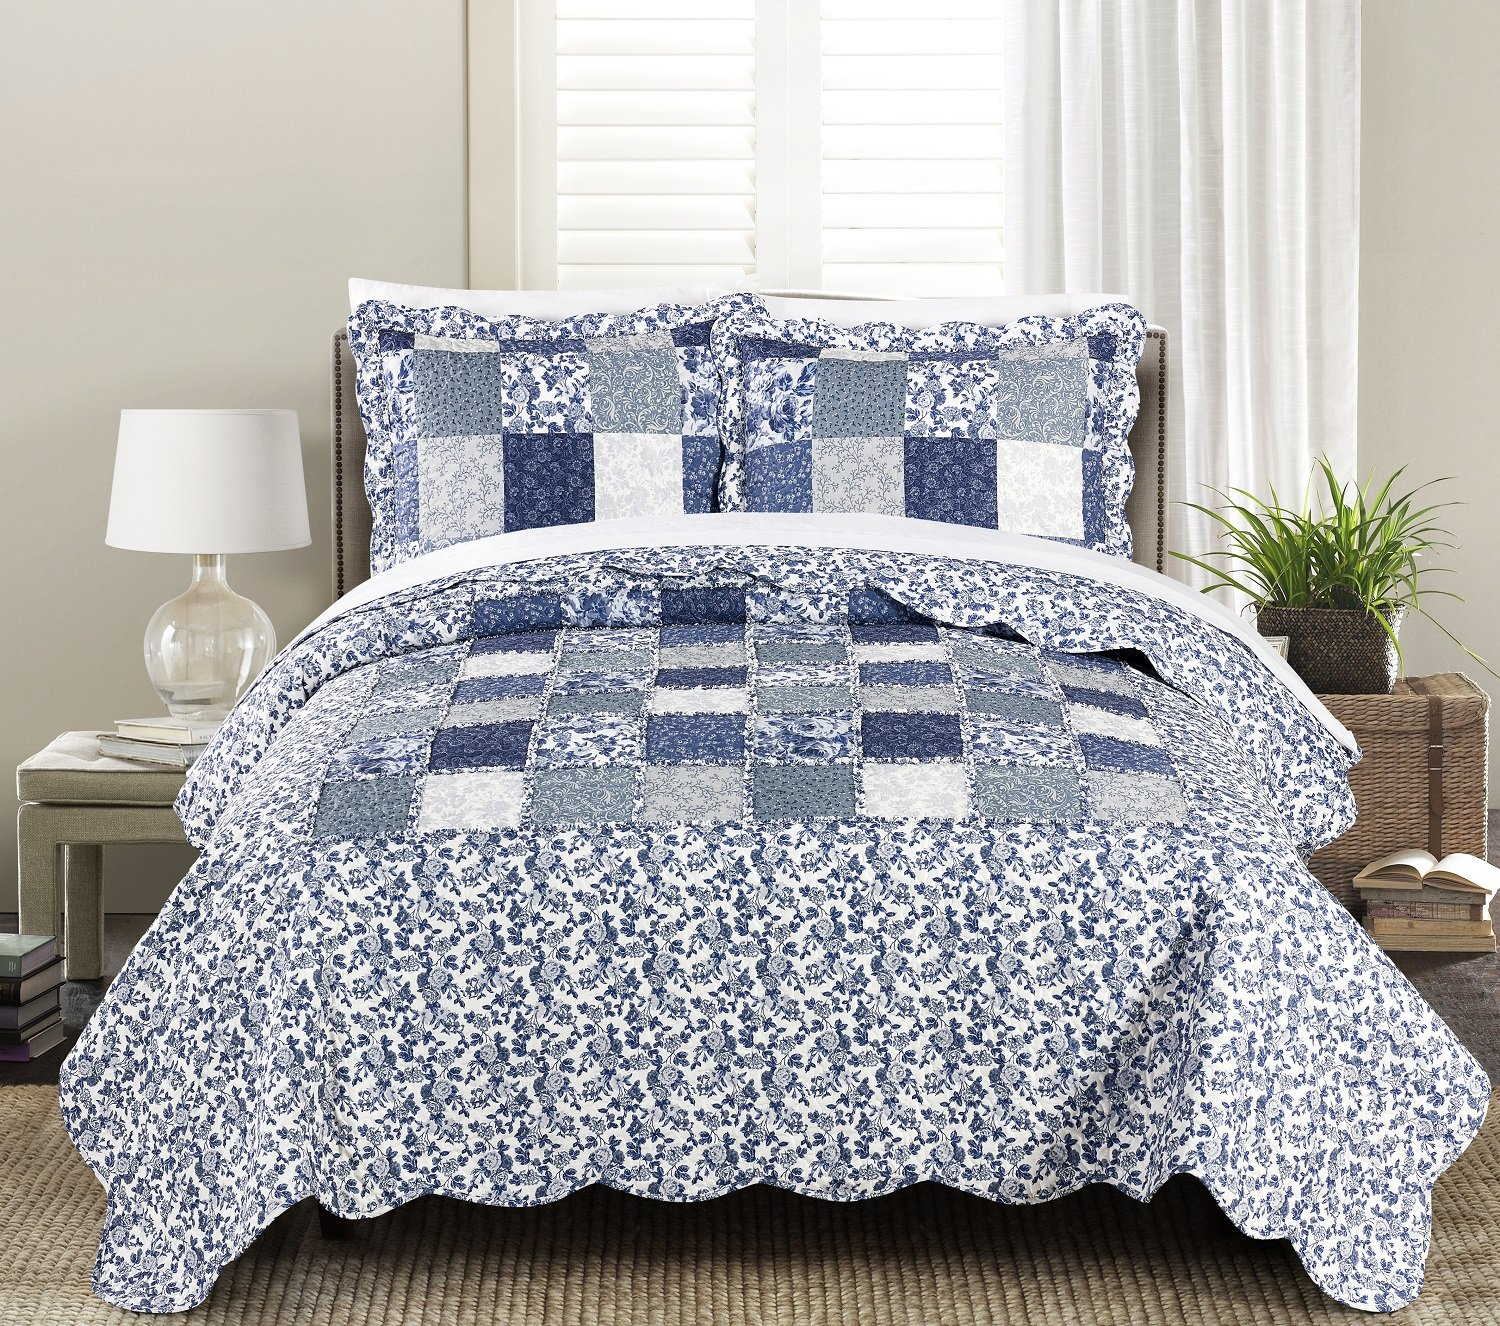 Blissful Living Luxury Ruffle Quilt Set Including Shams - Lightweight and Soft for all Seasons - Joyana Indigo - Full/Queen